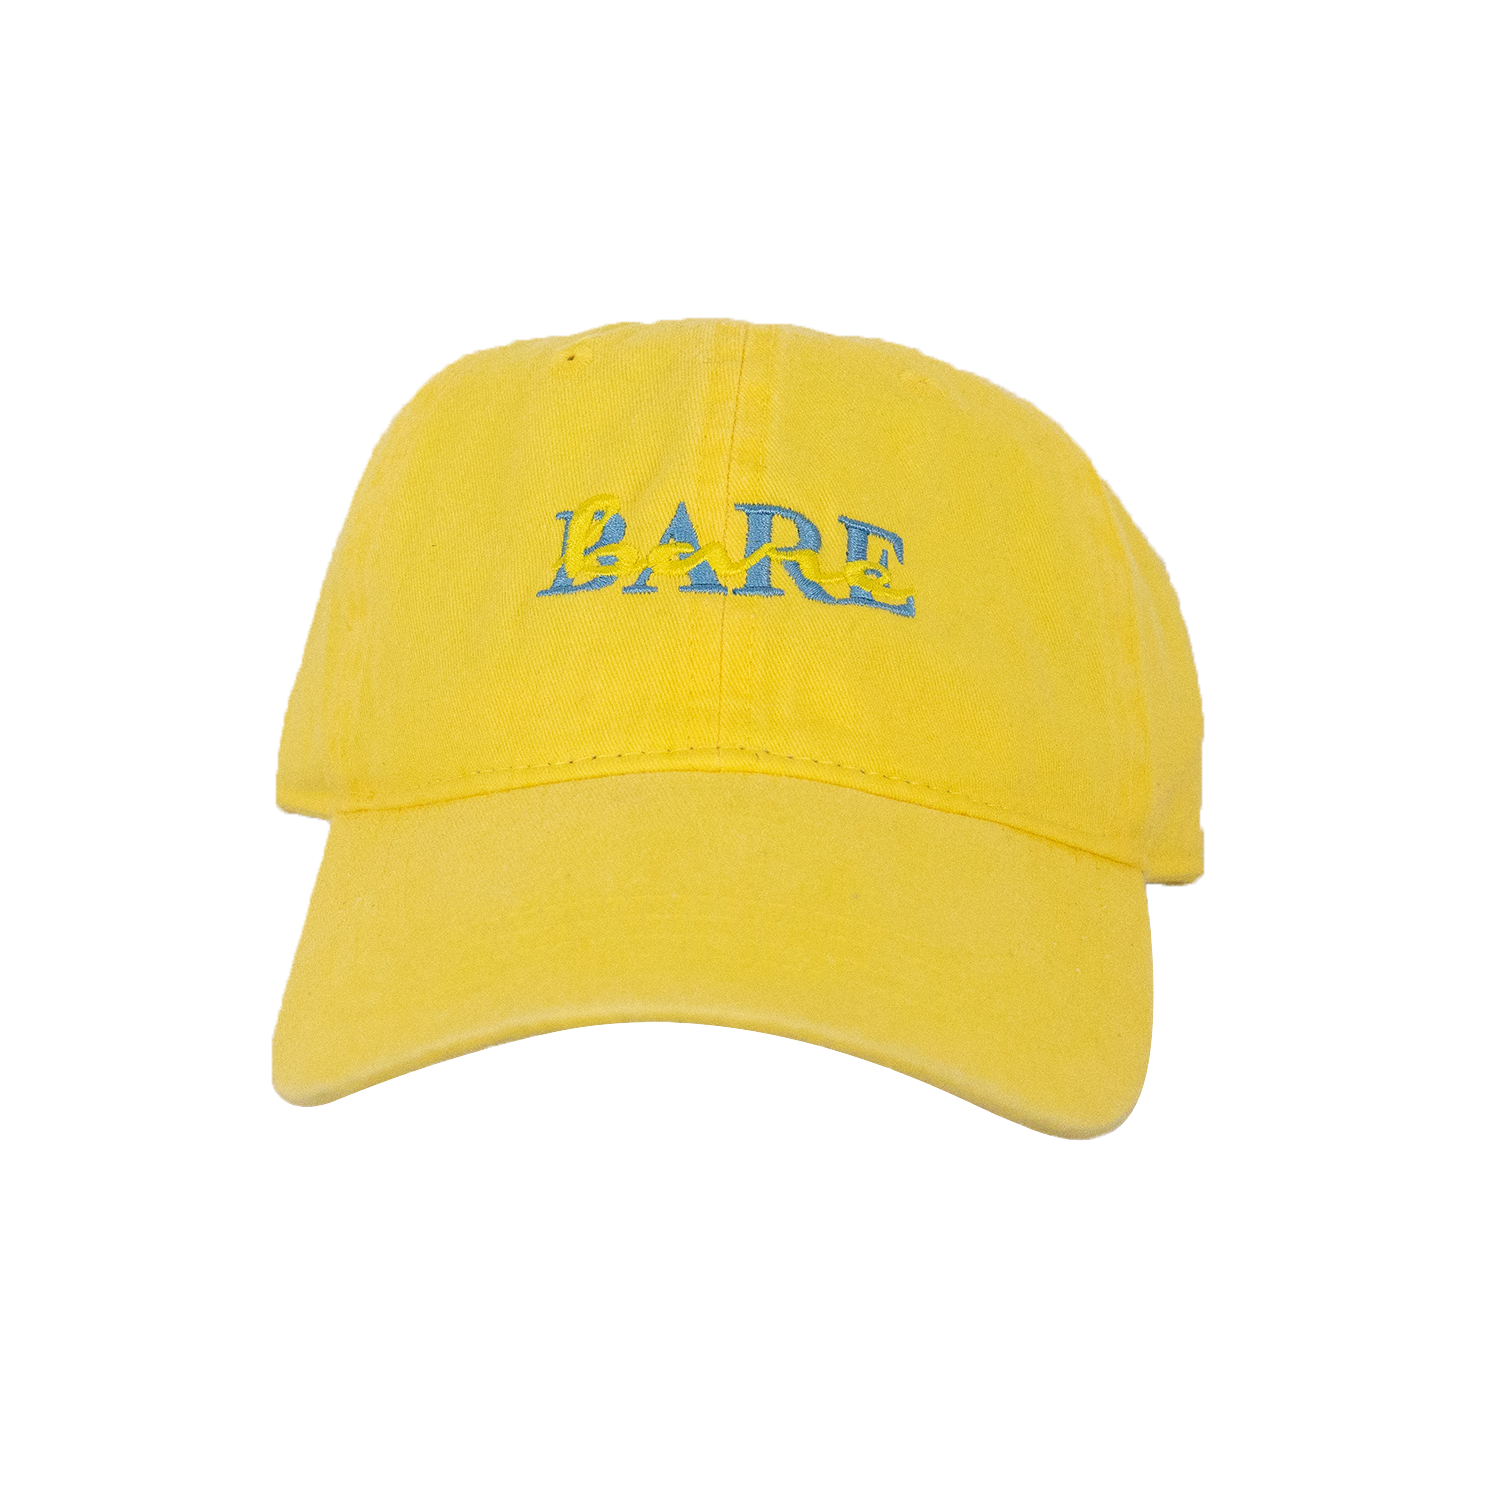 DAD HAT | DOUBLE VISION YELLOW/BLUE